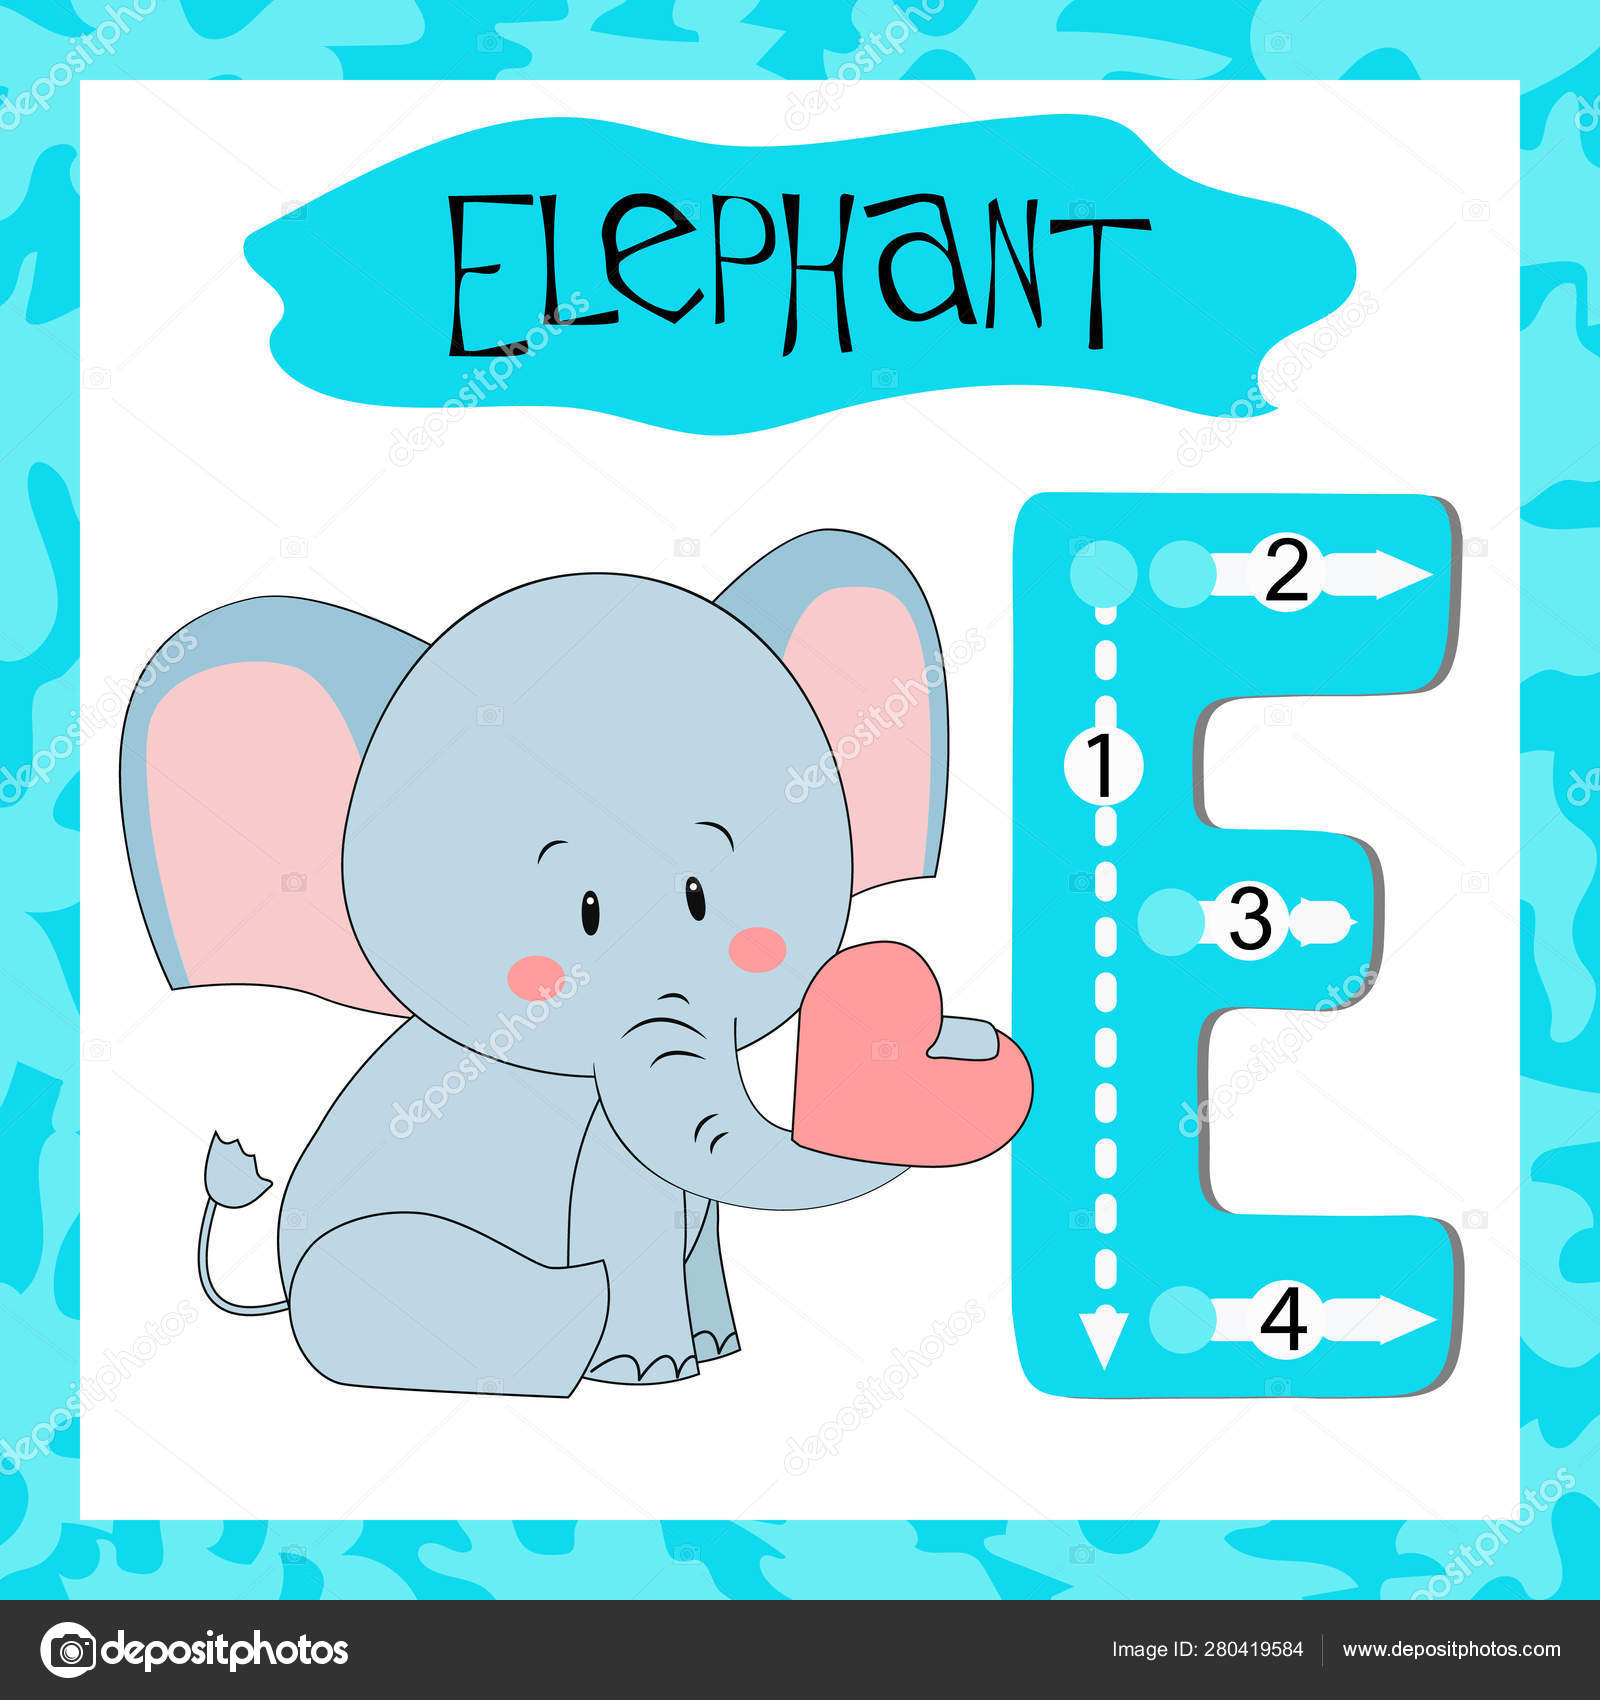 Letter E Uppercase Cute Children Colorful Zoo And Animals Abc Alphabet  Tracing Flashcard Of Elephant For Kids Learning English Vocabulary And inside Alphabet Tracing Flashcards